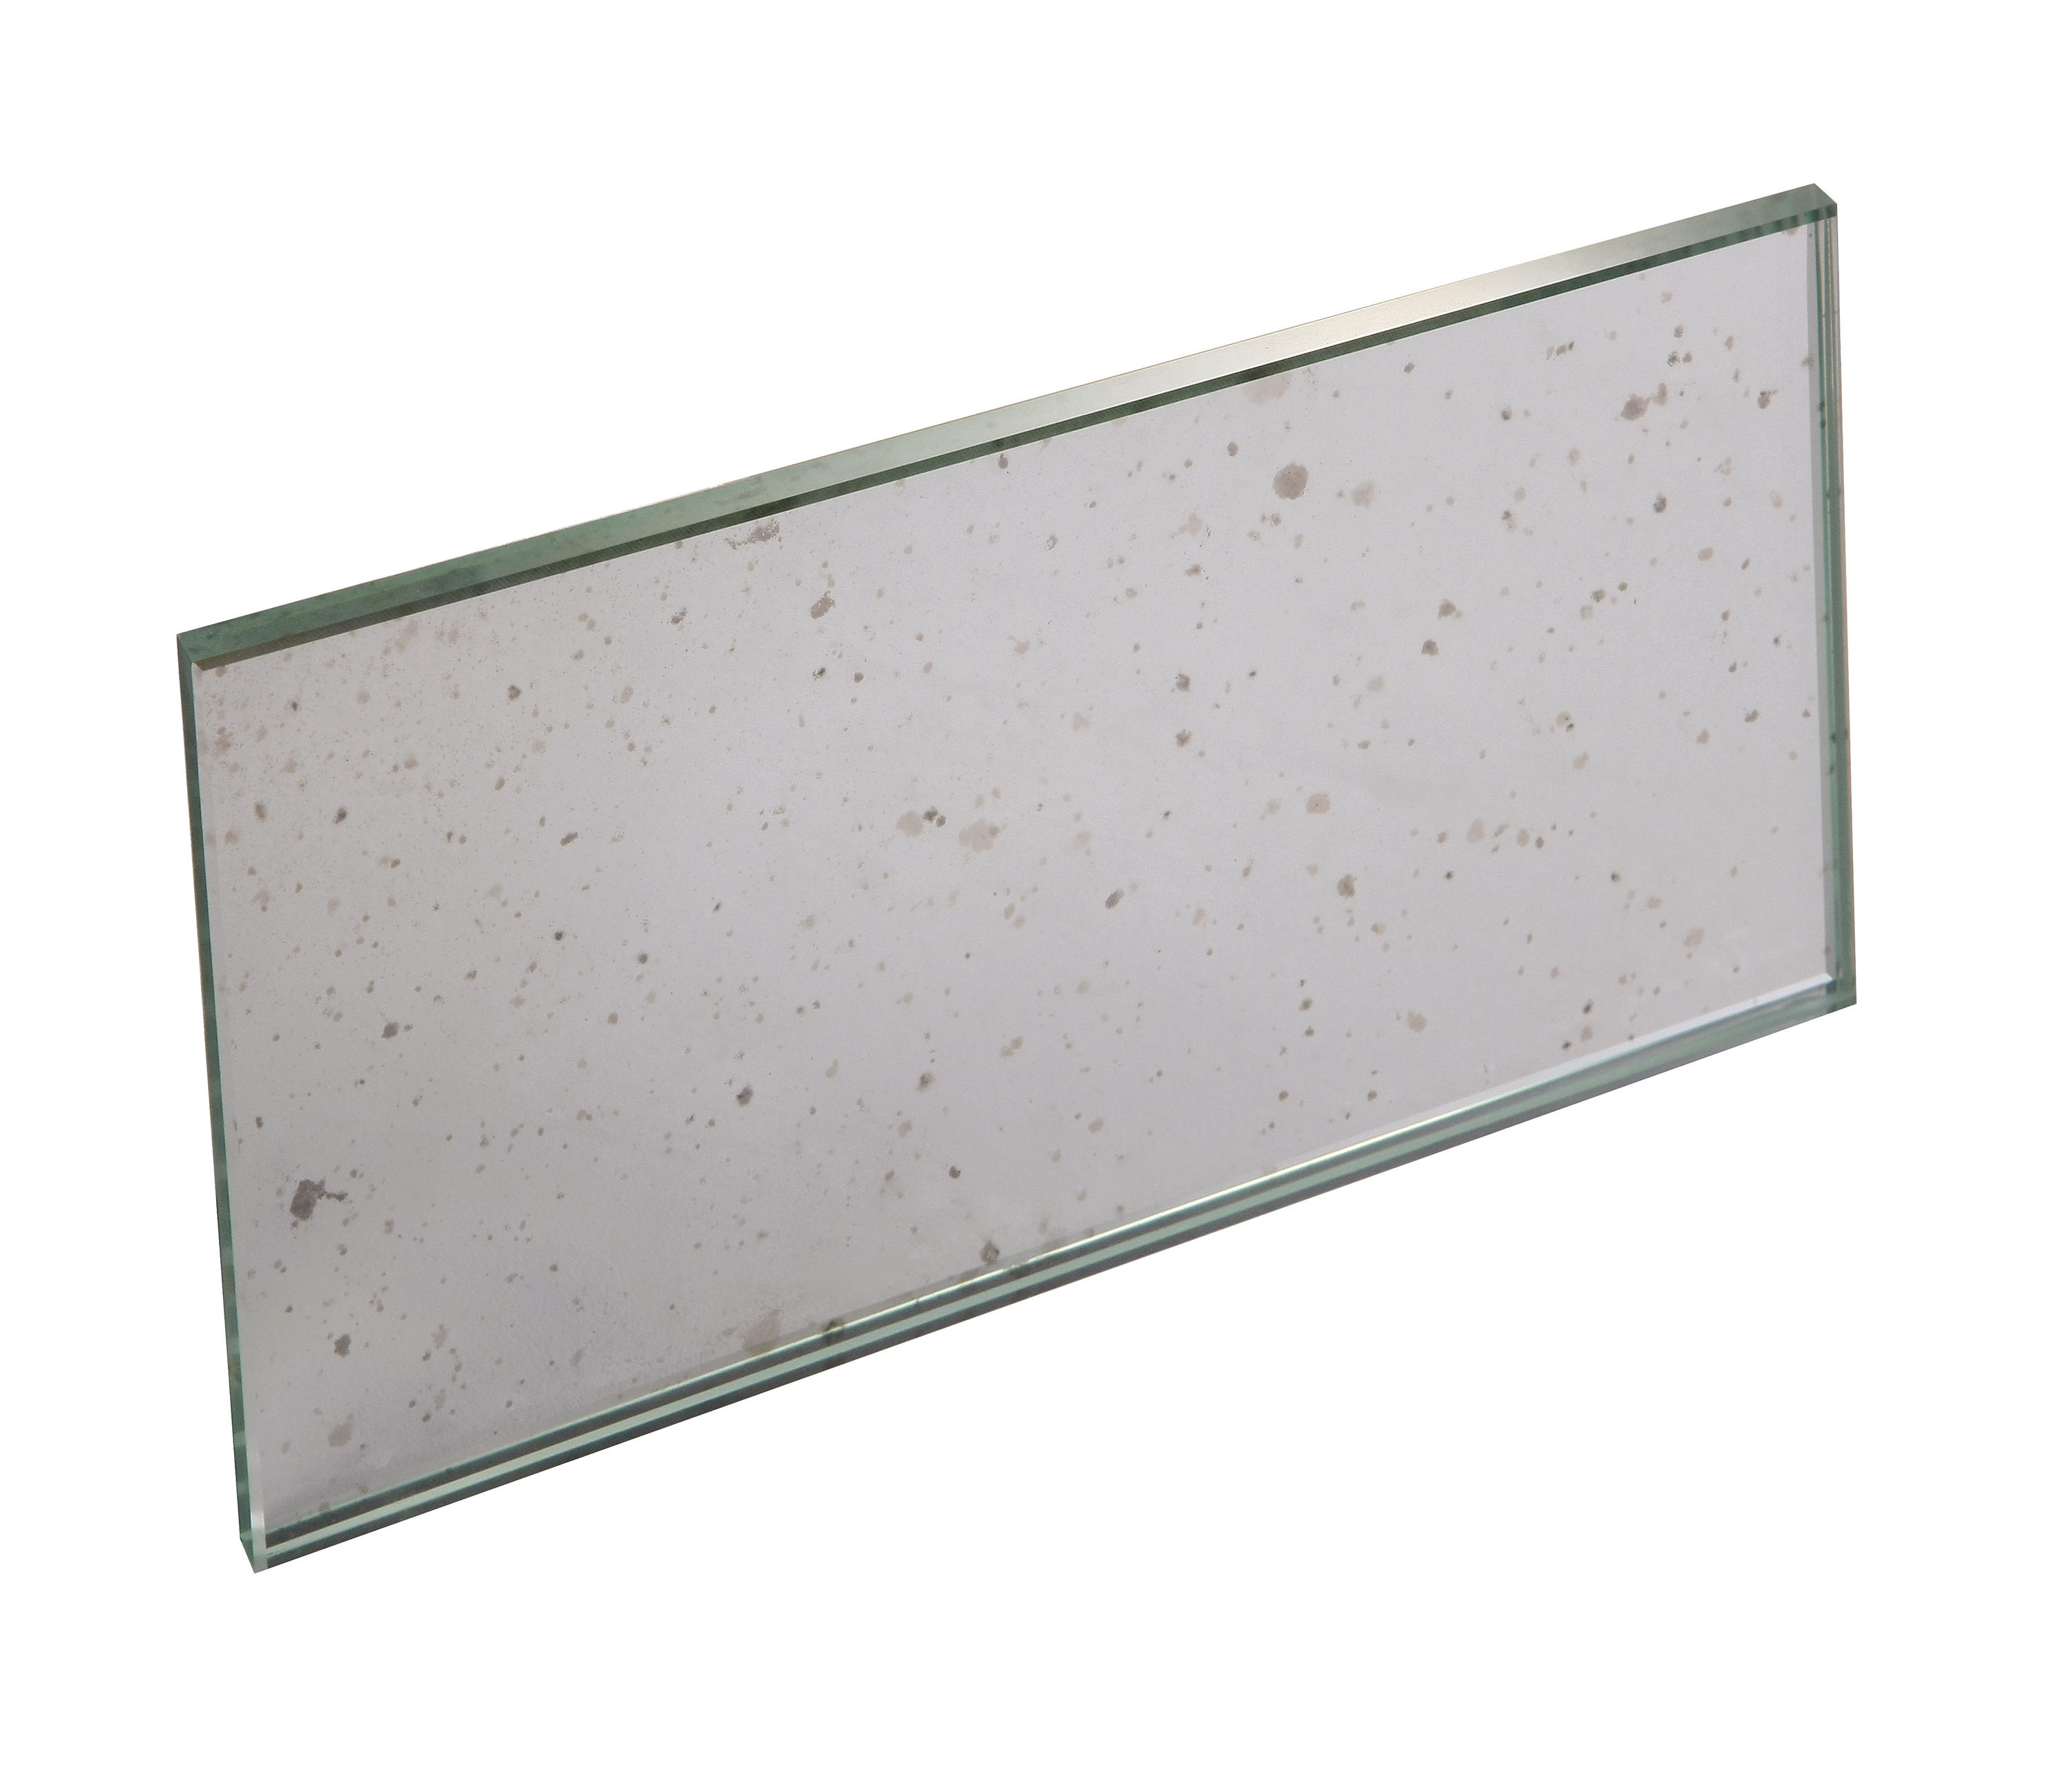 Tile Bianco E Nero 1 Glass Tiles From Antique Mirror Architonic